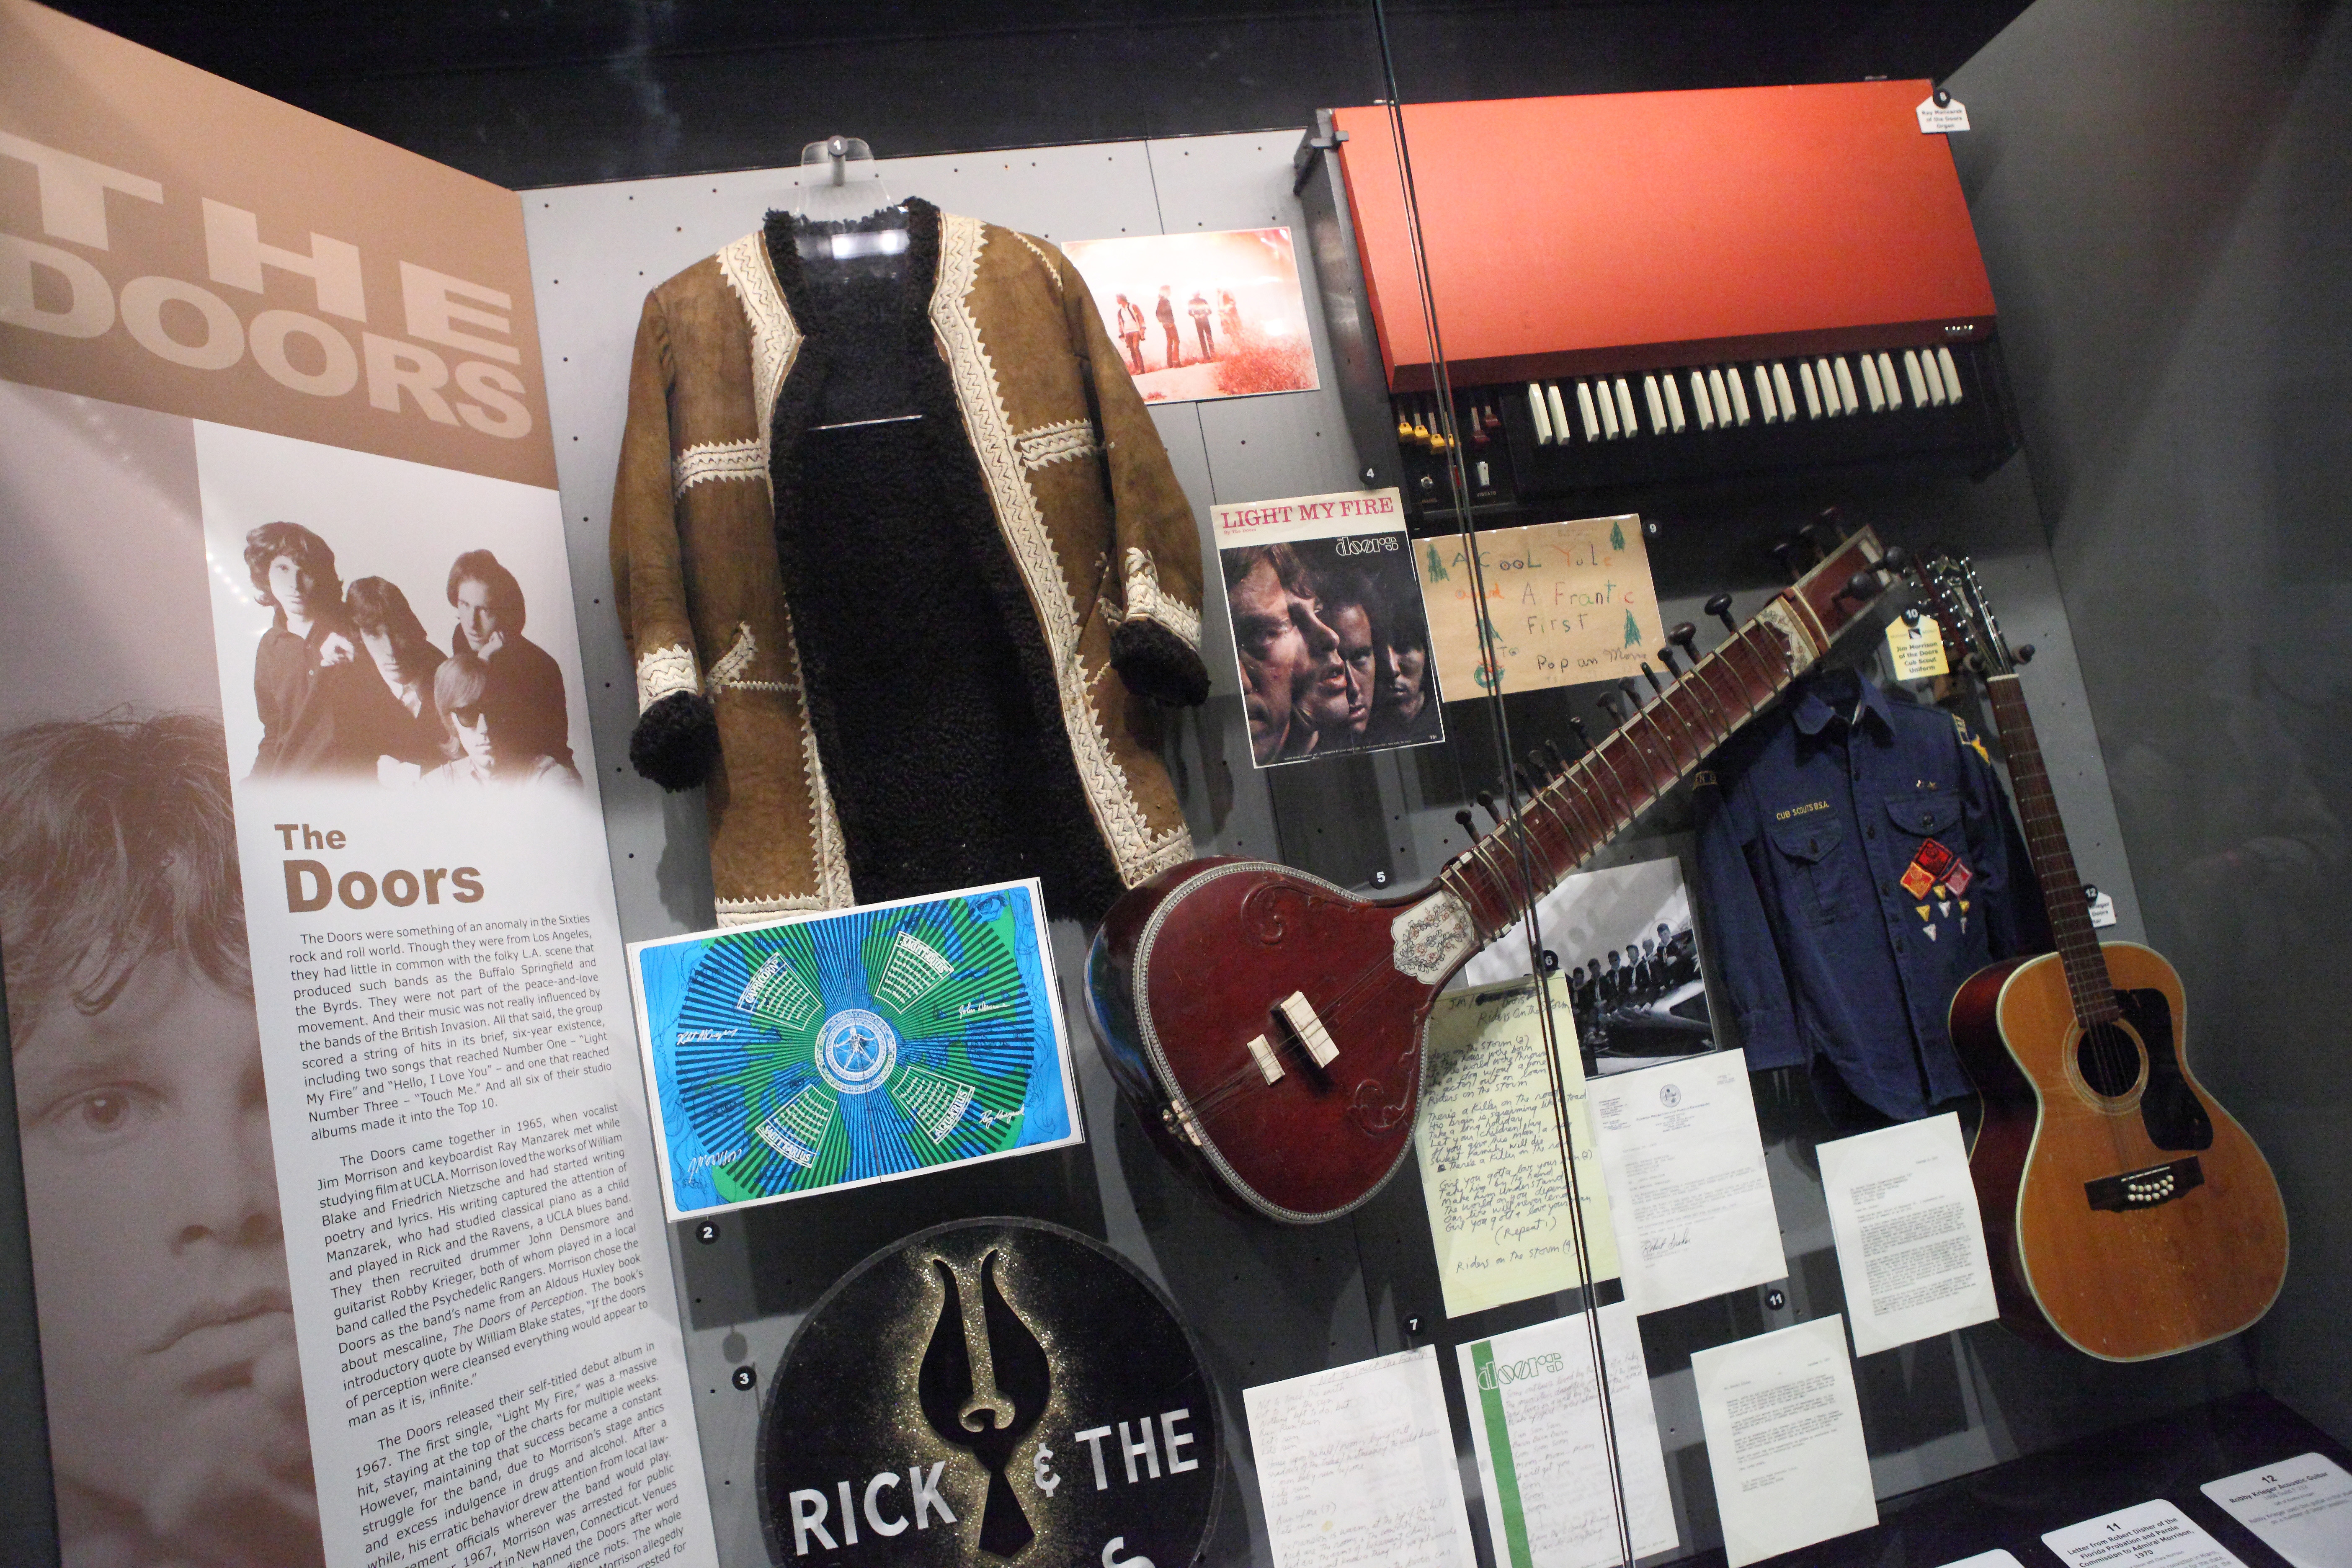 FileThe Doors - artifacts - Rock and Roll Hall of Fame (2014- & File:The Doors - artifacts - Rock and Roll Hall of Fame (2014-12-30 ...